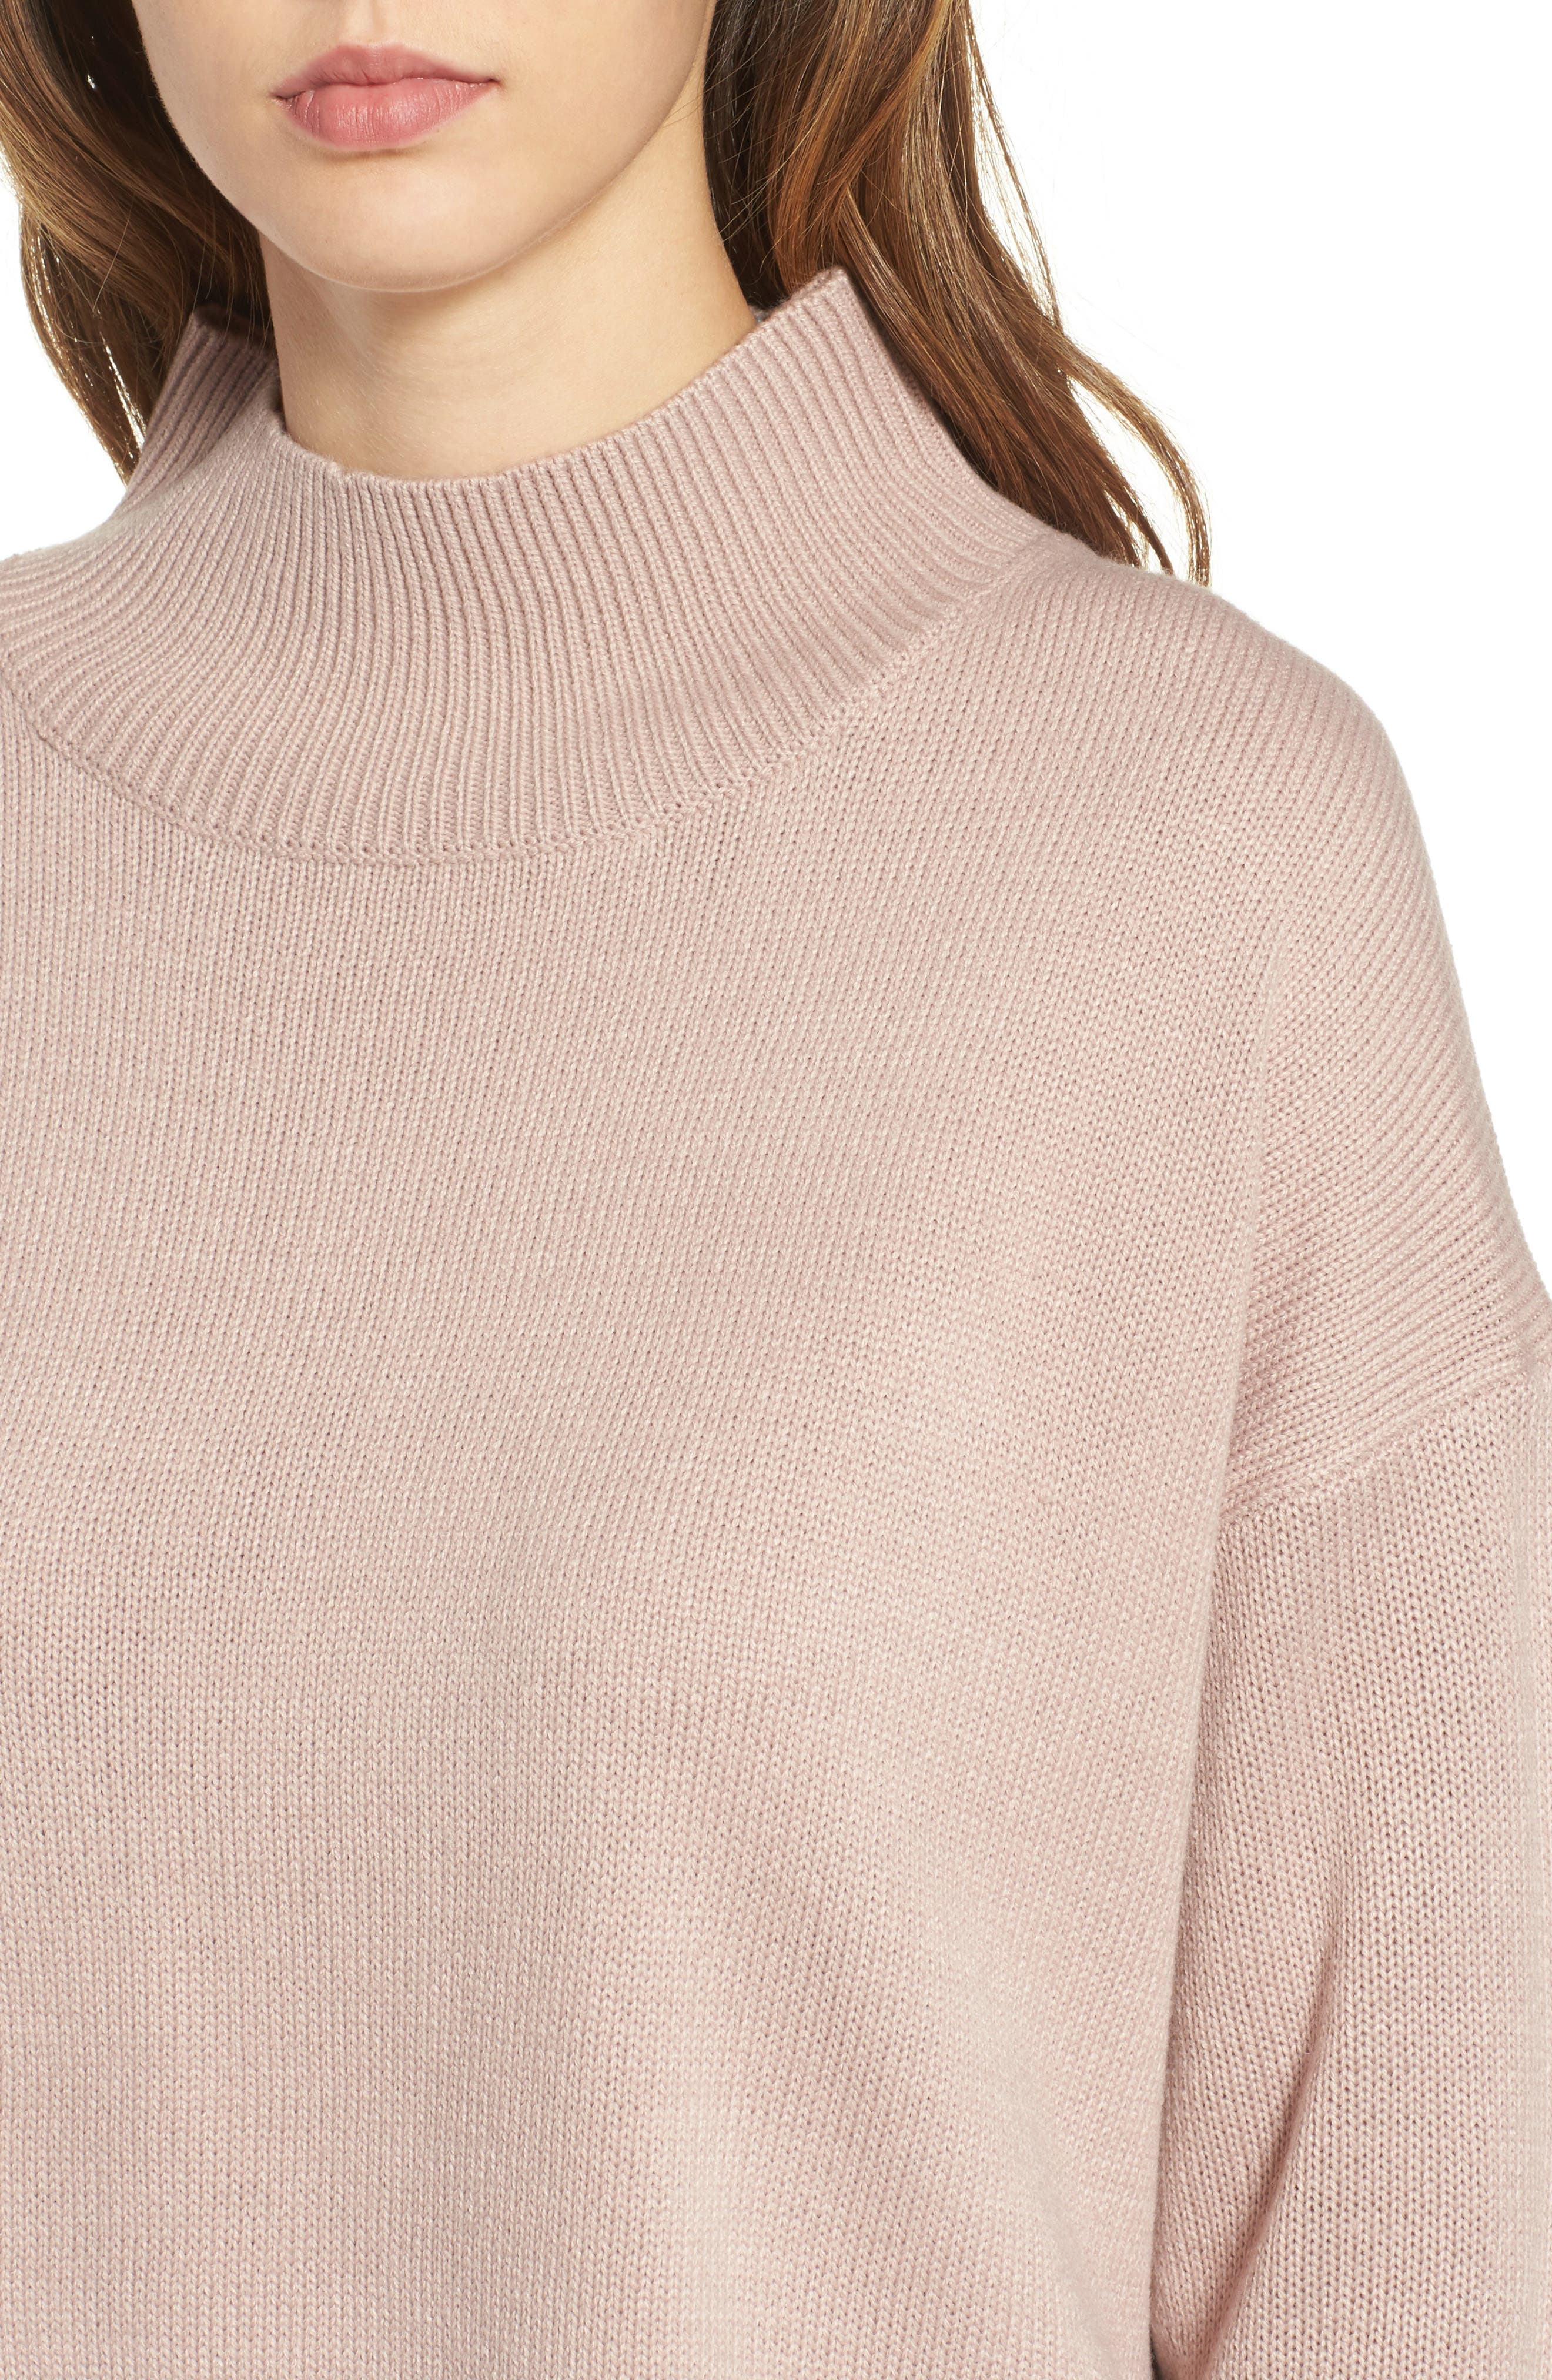 Oversize Sweater,                             Alternate thumbnail 4, color,                             Pink